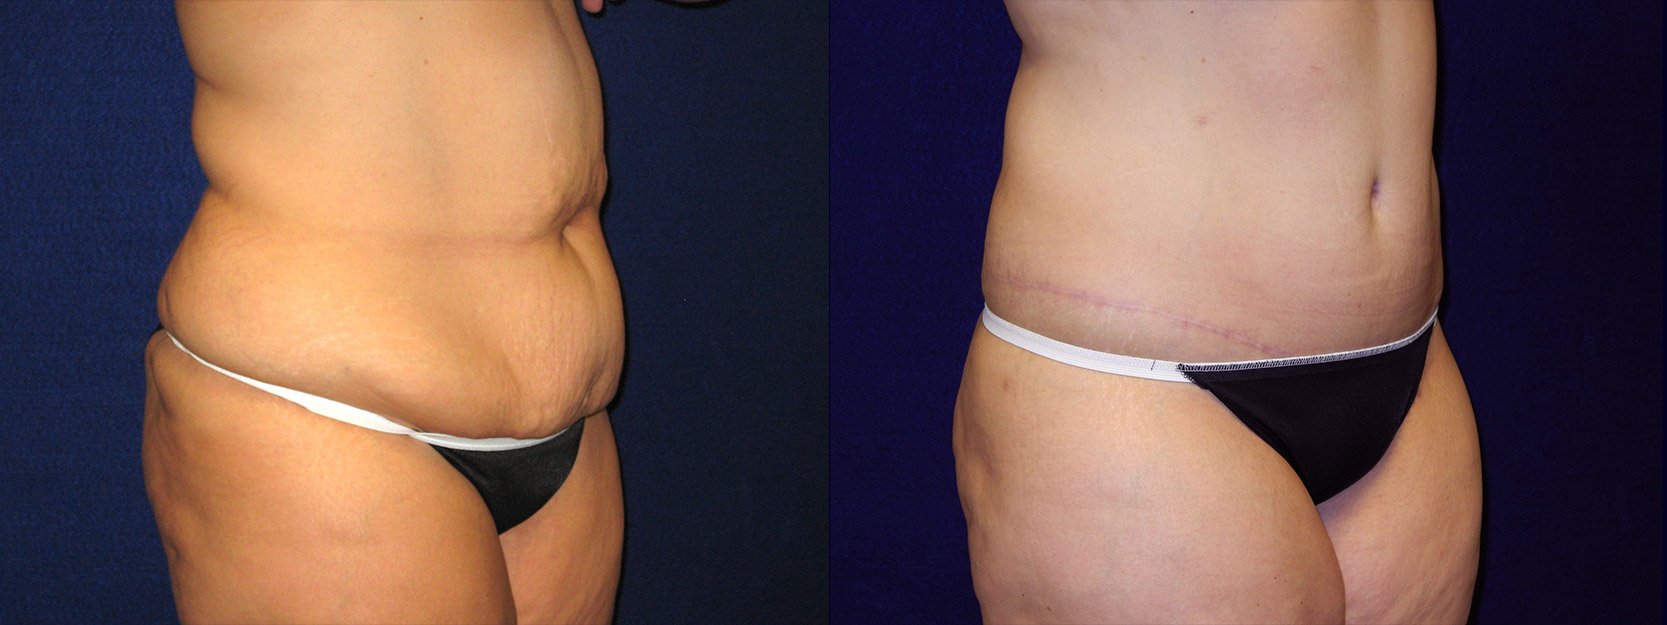 Right 3/4 View - Abdominoplasty After Massive Weight Loss